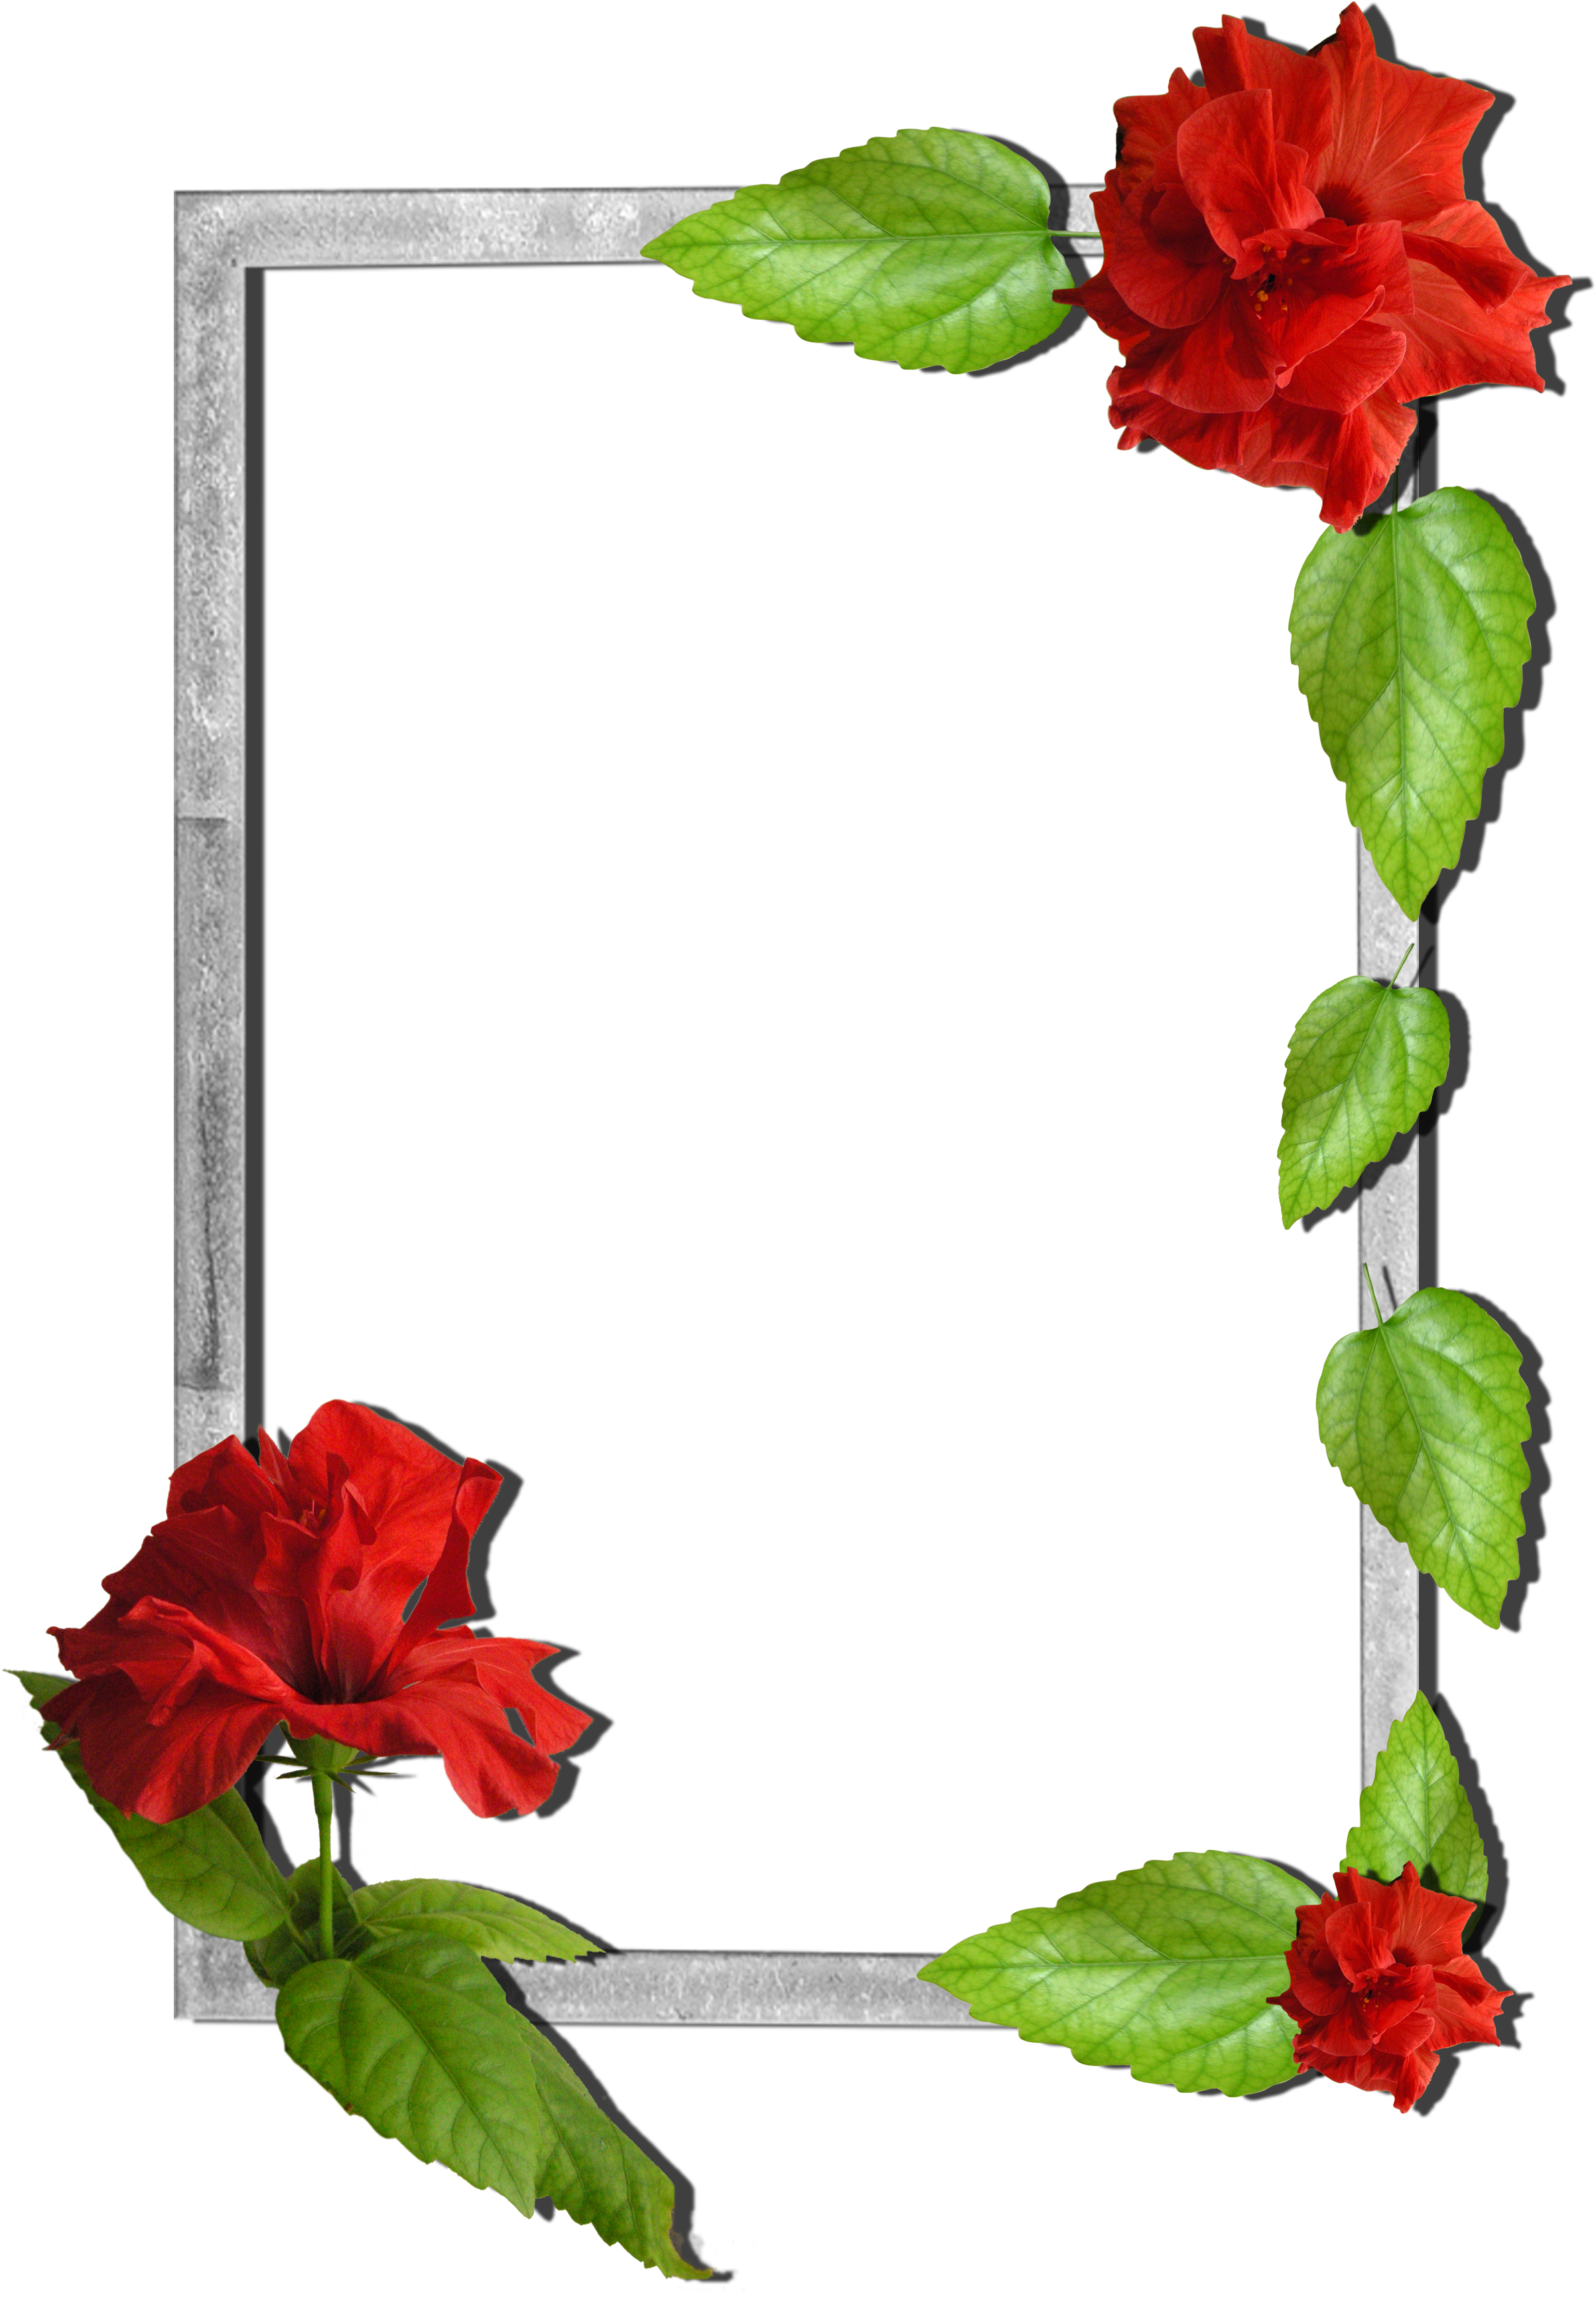 Transparent clip art borders flowers rose - Flower Love Photo Frames Free Download